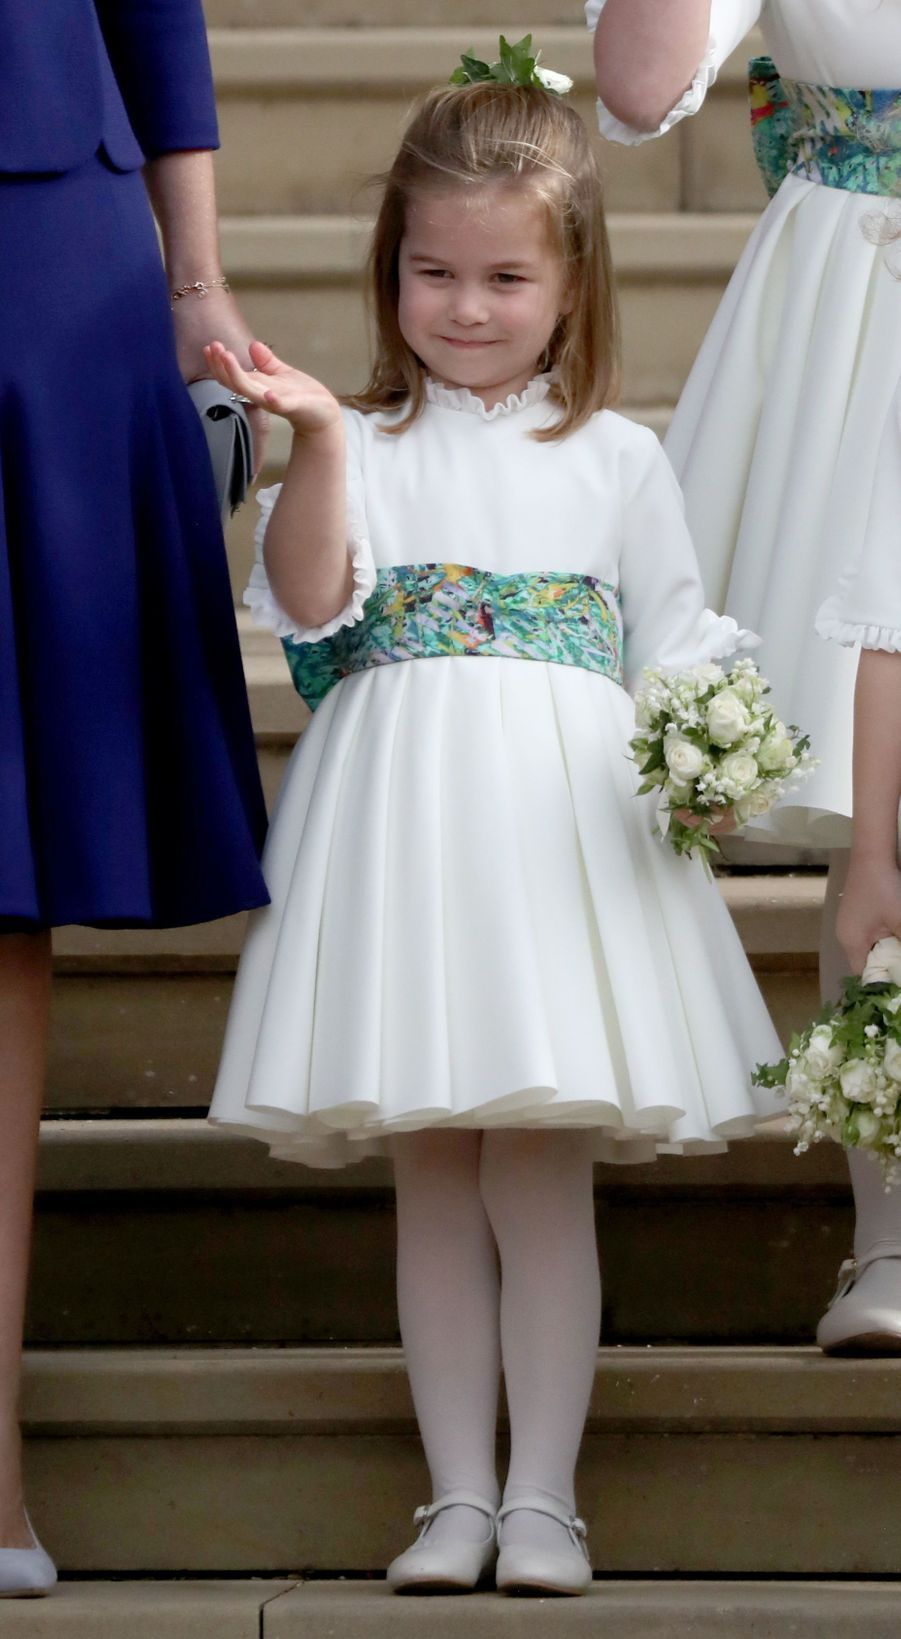 La princesse Charlotte de Cambridge à Windsor, le 12 octobre 2018